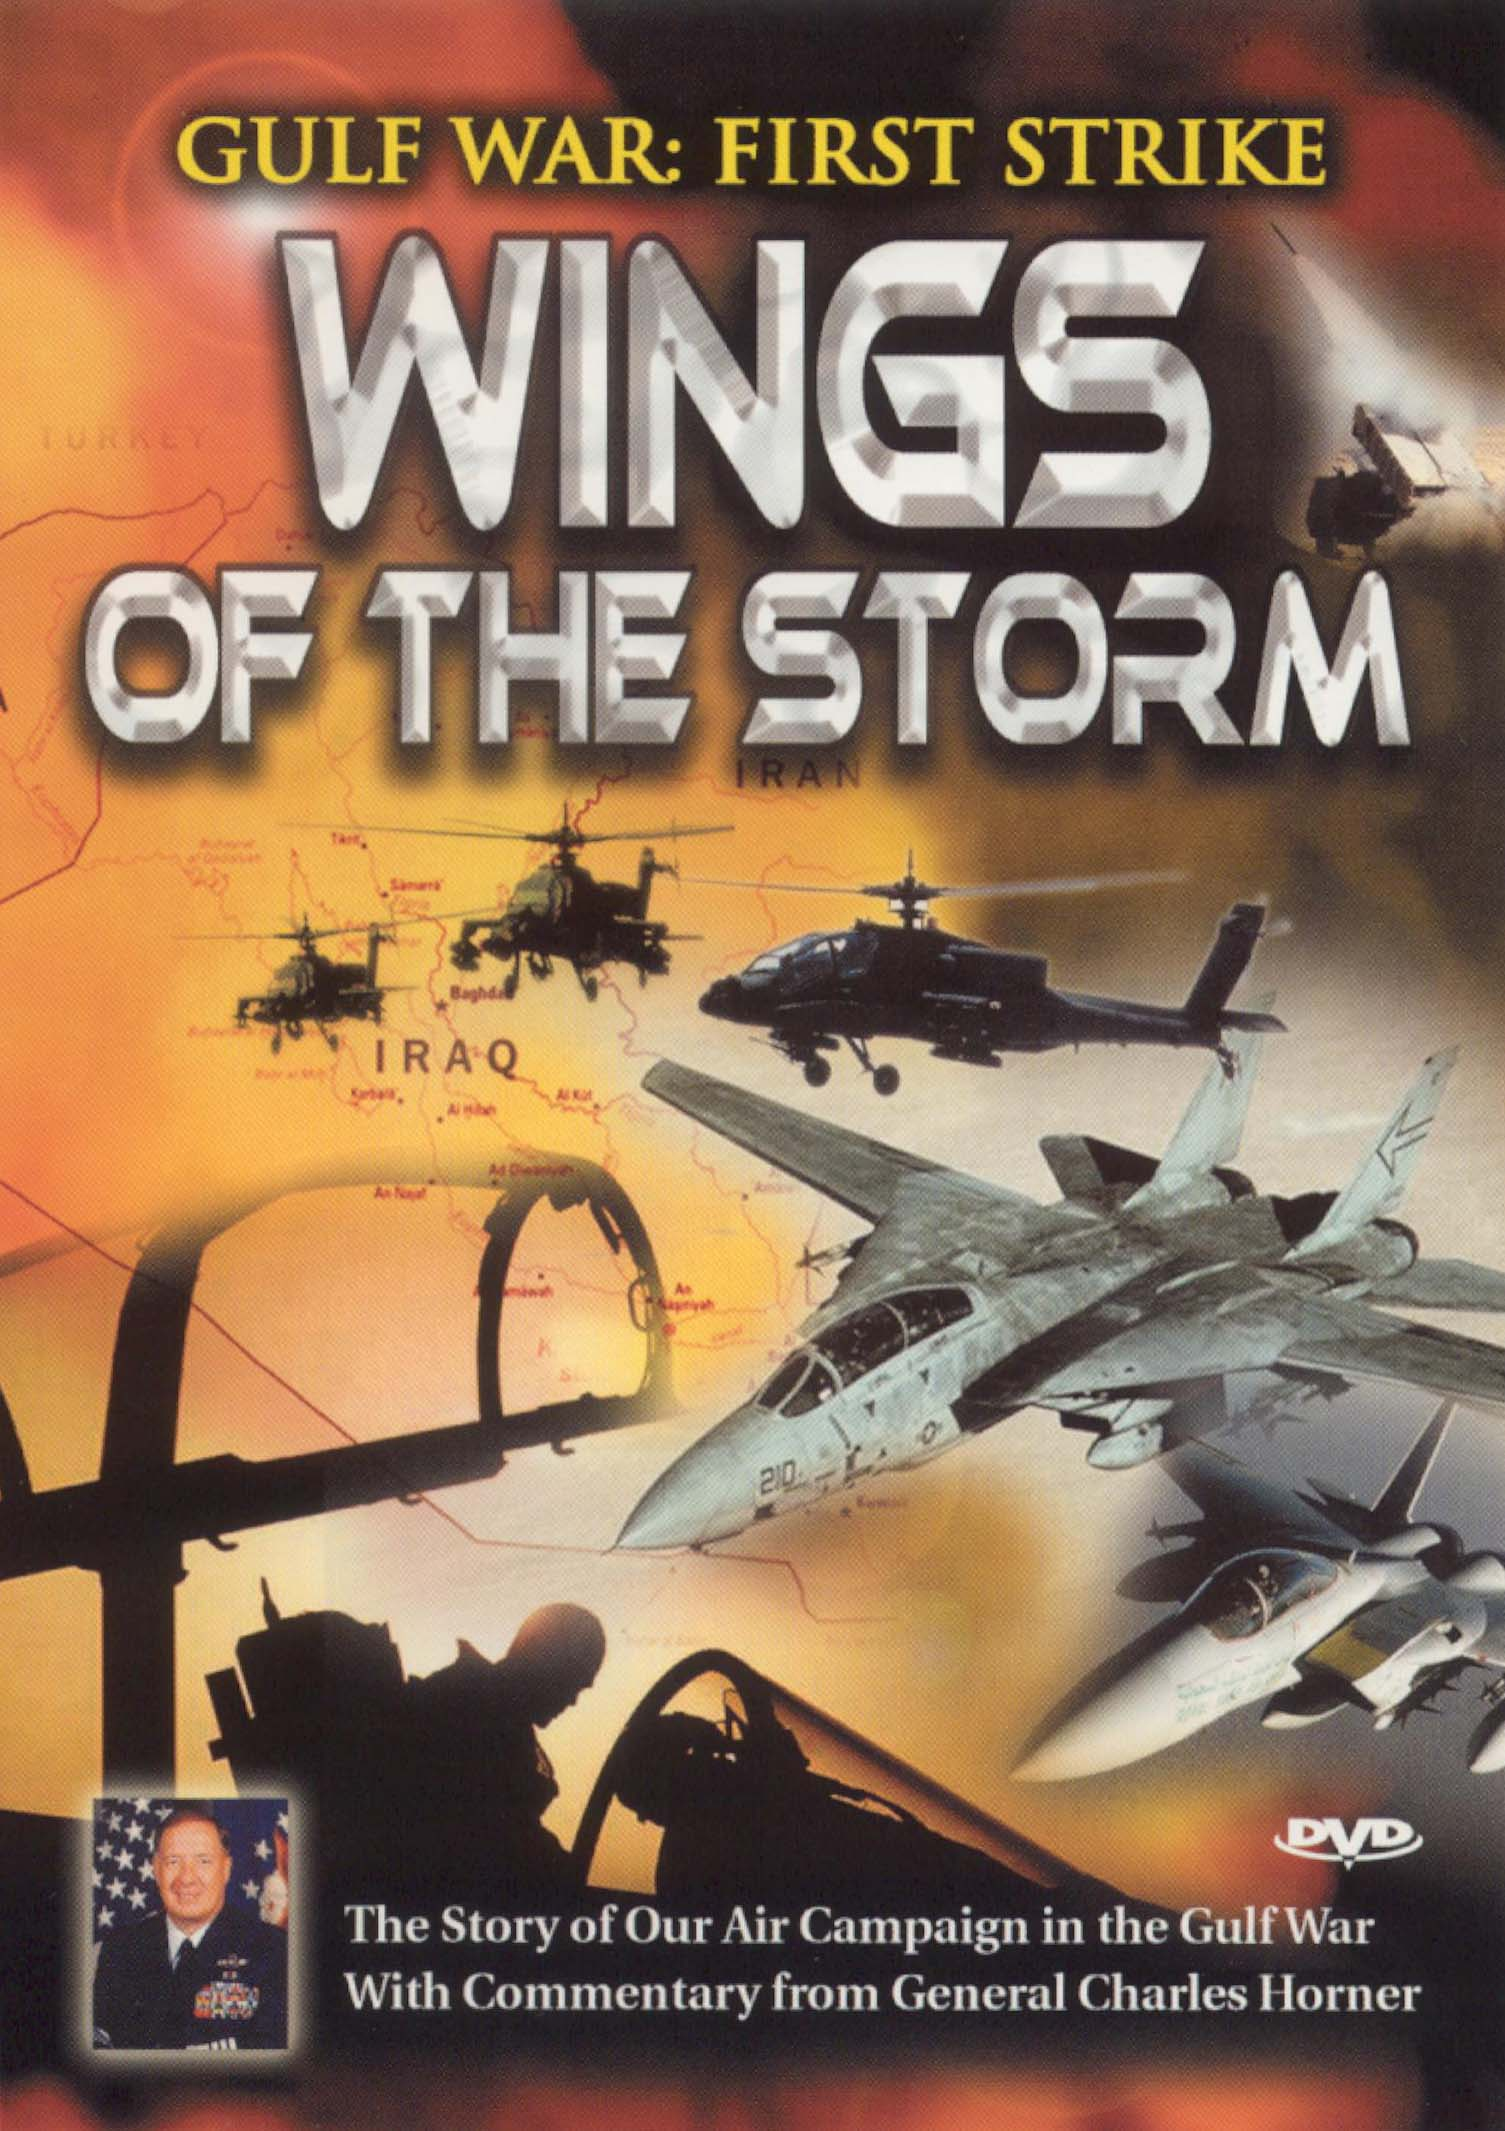 Gulf War: First Strike - Wings of the Storm